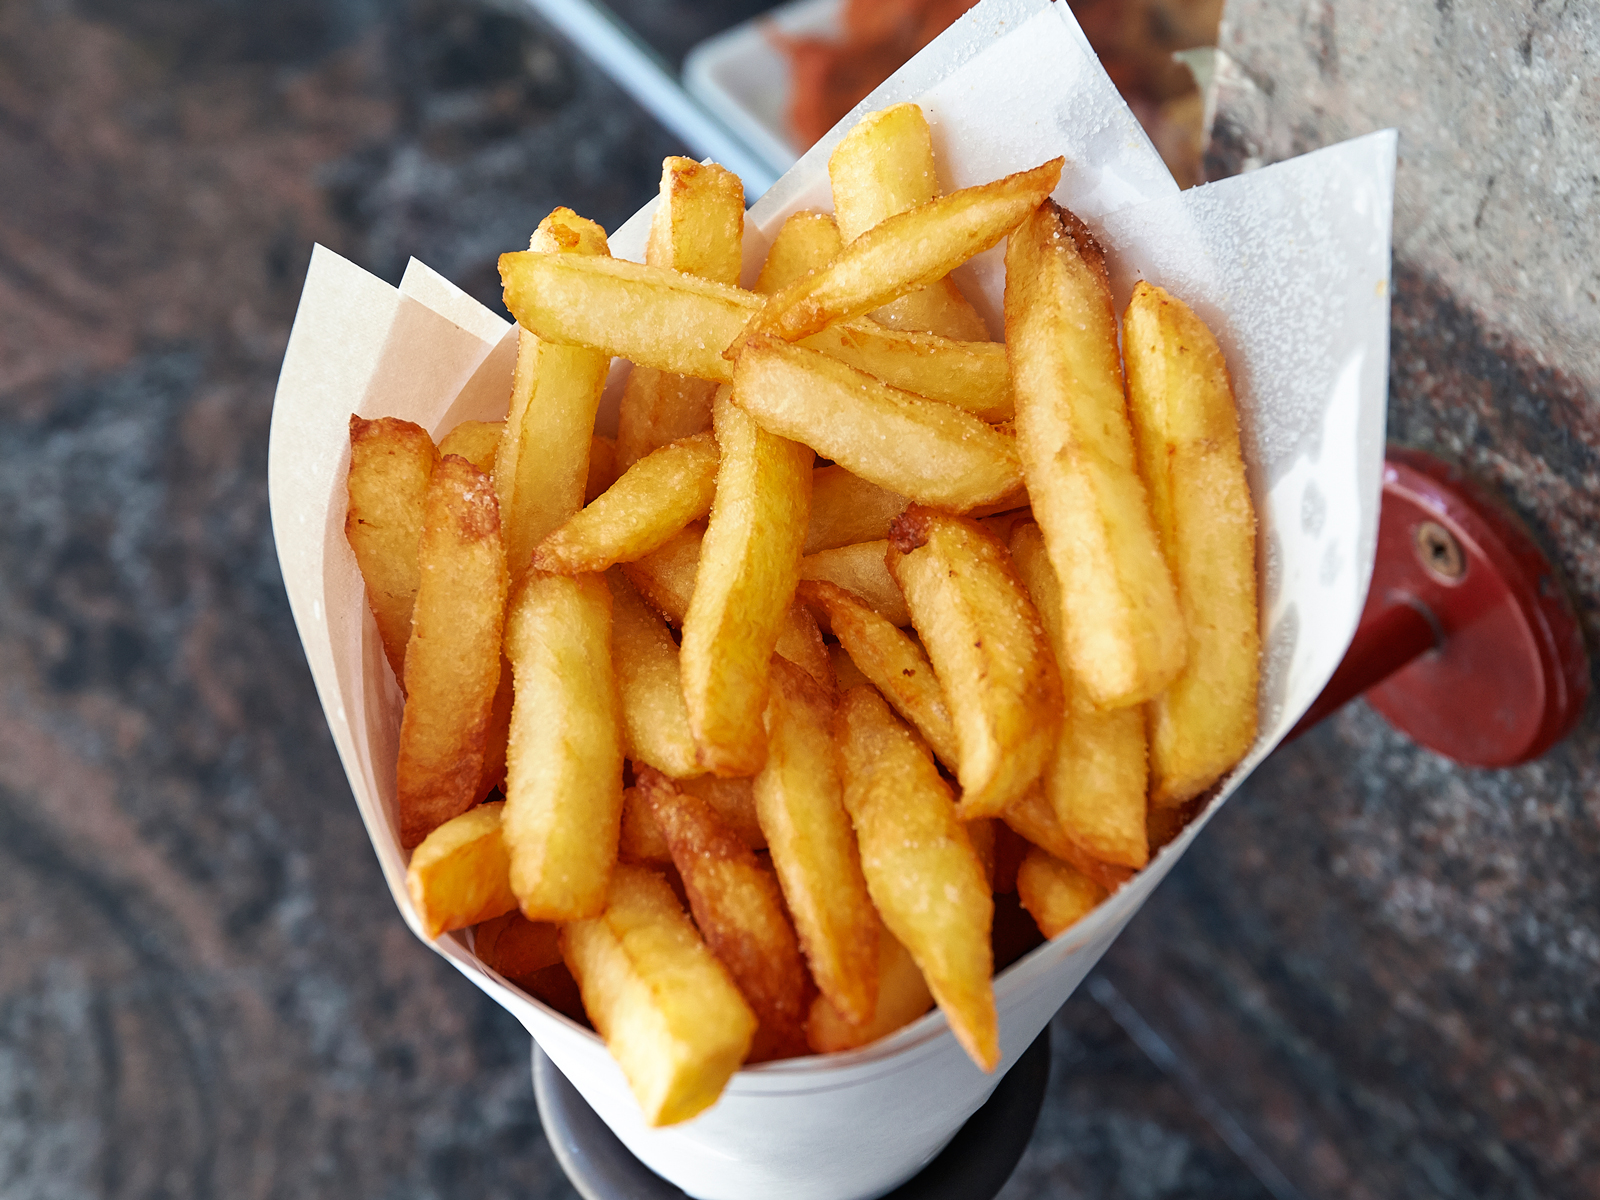 Fries in Belgium, France, and the U.K. Expected to Be an Inch Shorter This Season